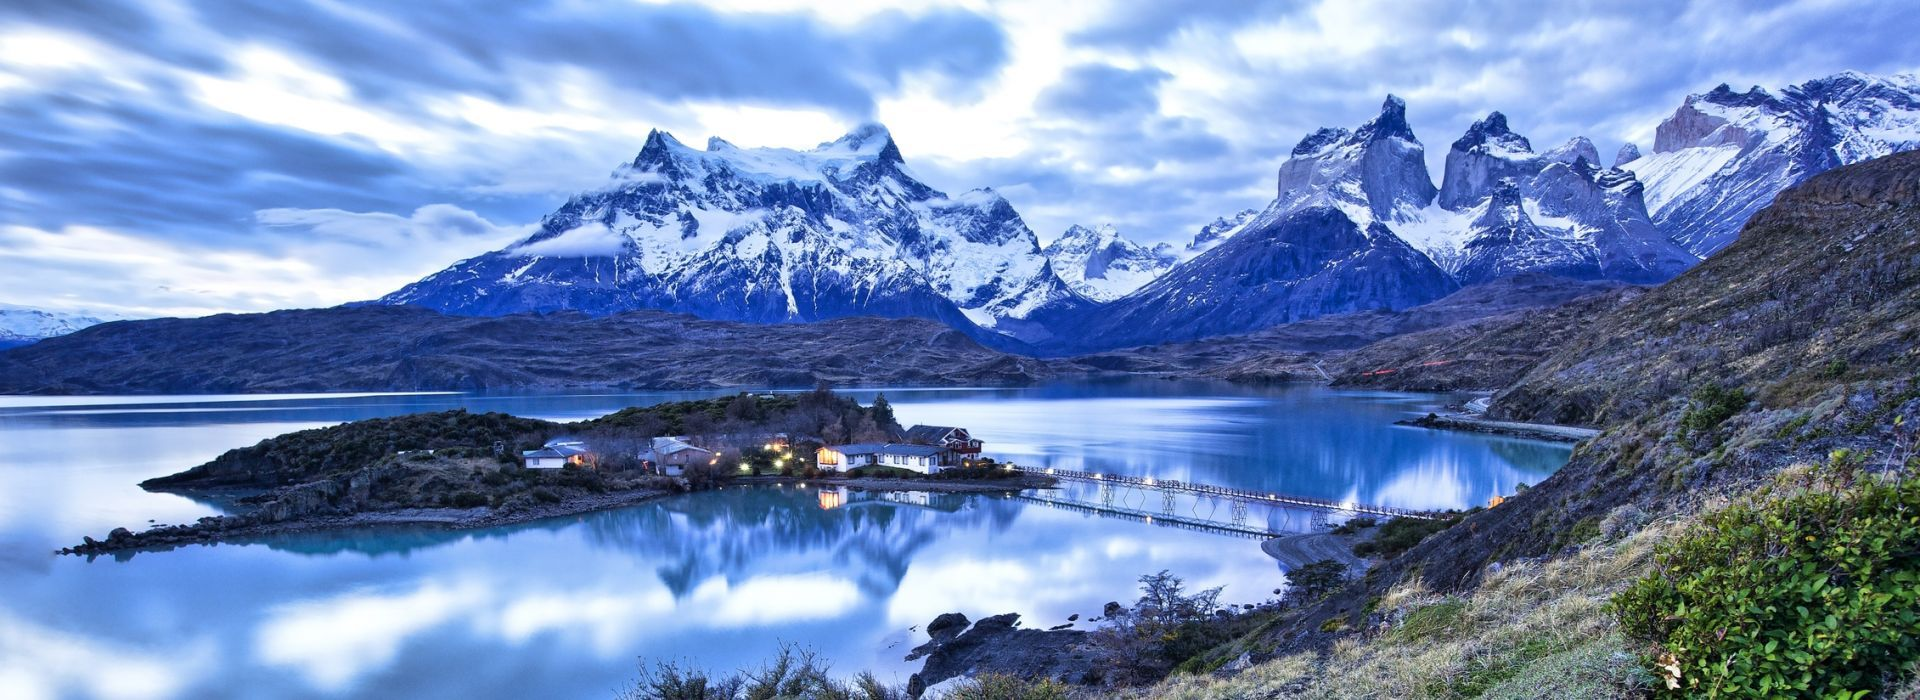 National parks Tours in Chile